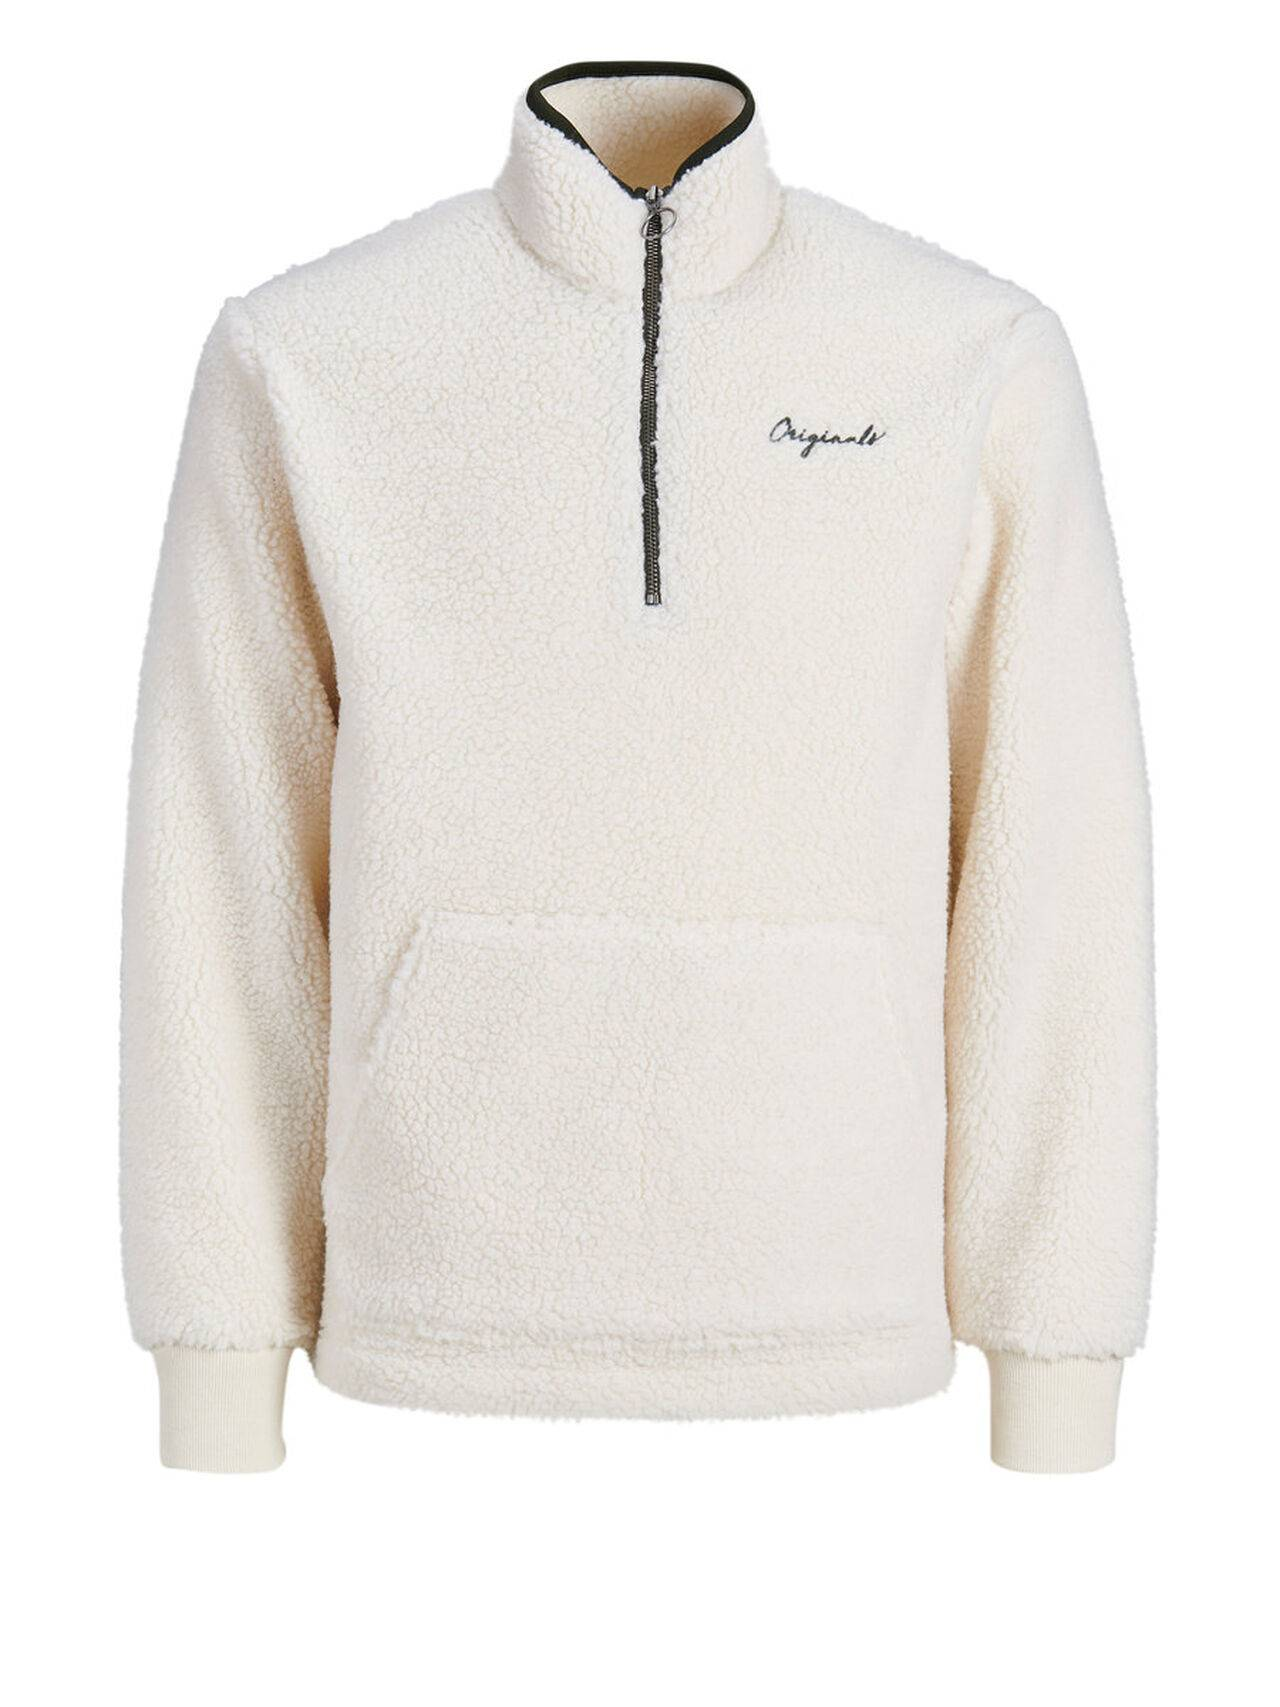 JACK & JONES Half Zip Sweatshirt Men White CloudDancer